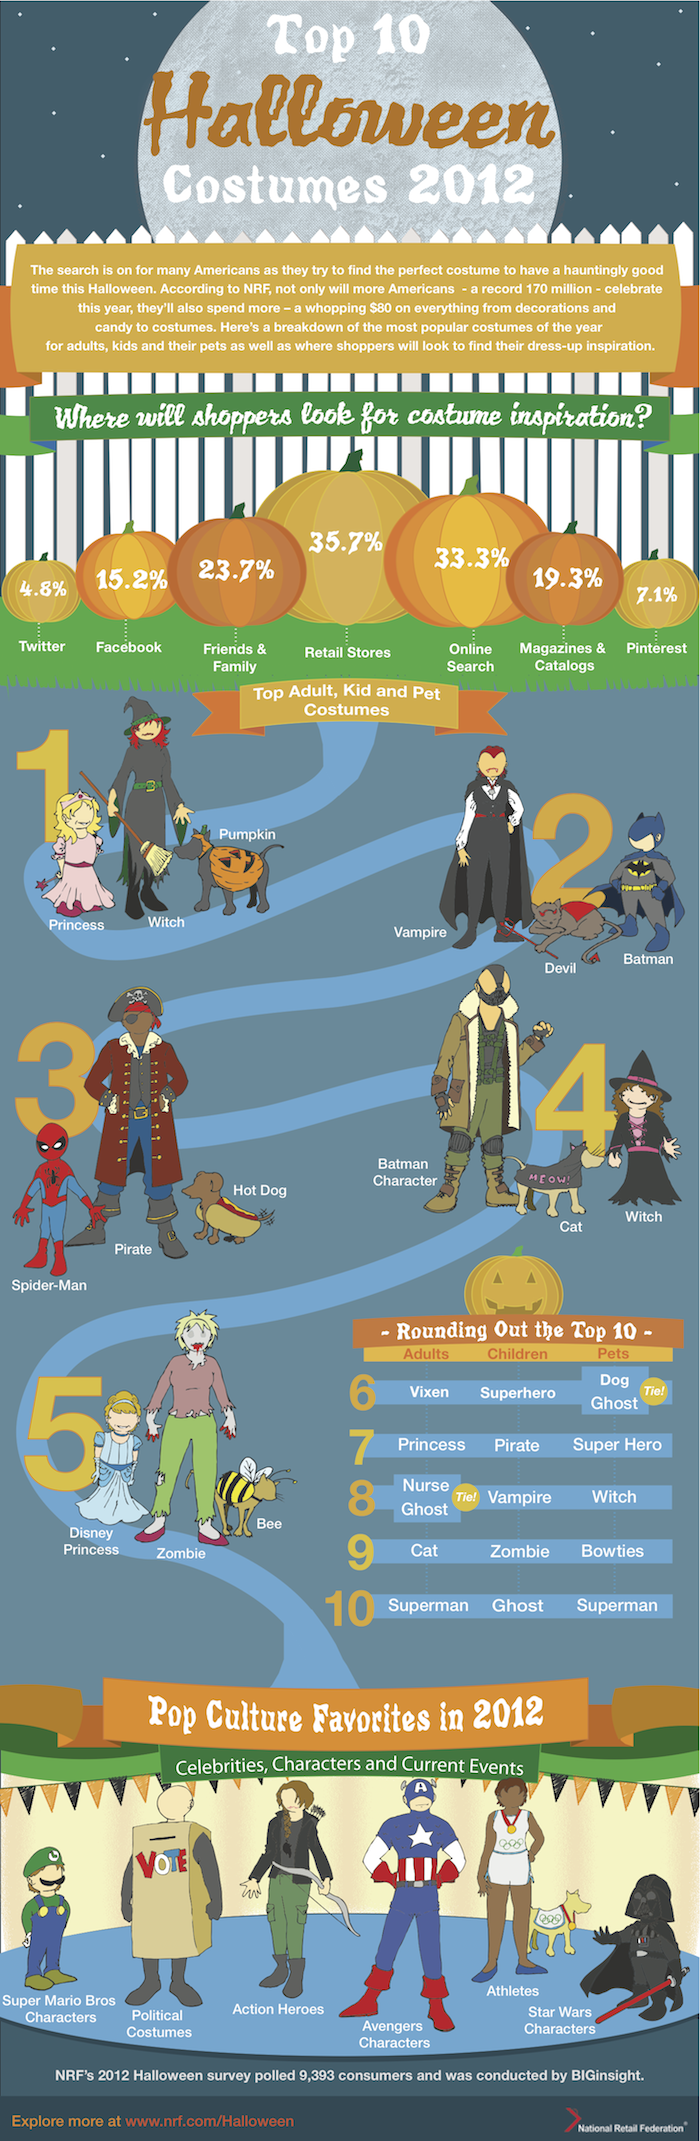 Top Halloween costumes for adults, kids and pets in 2012 &#8211; Infographic